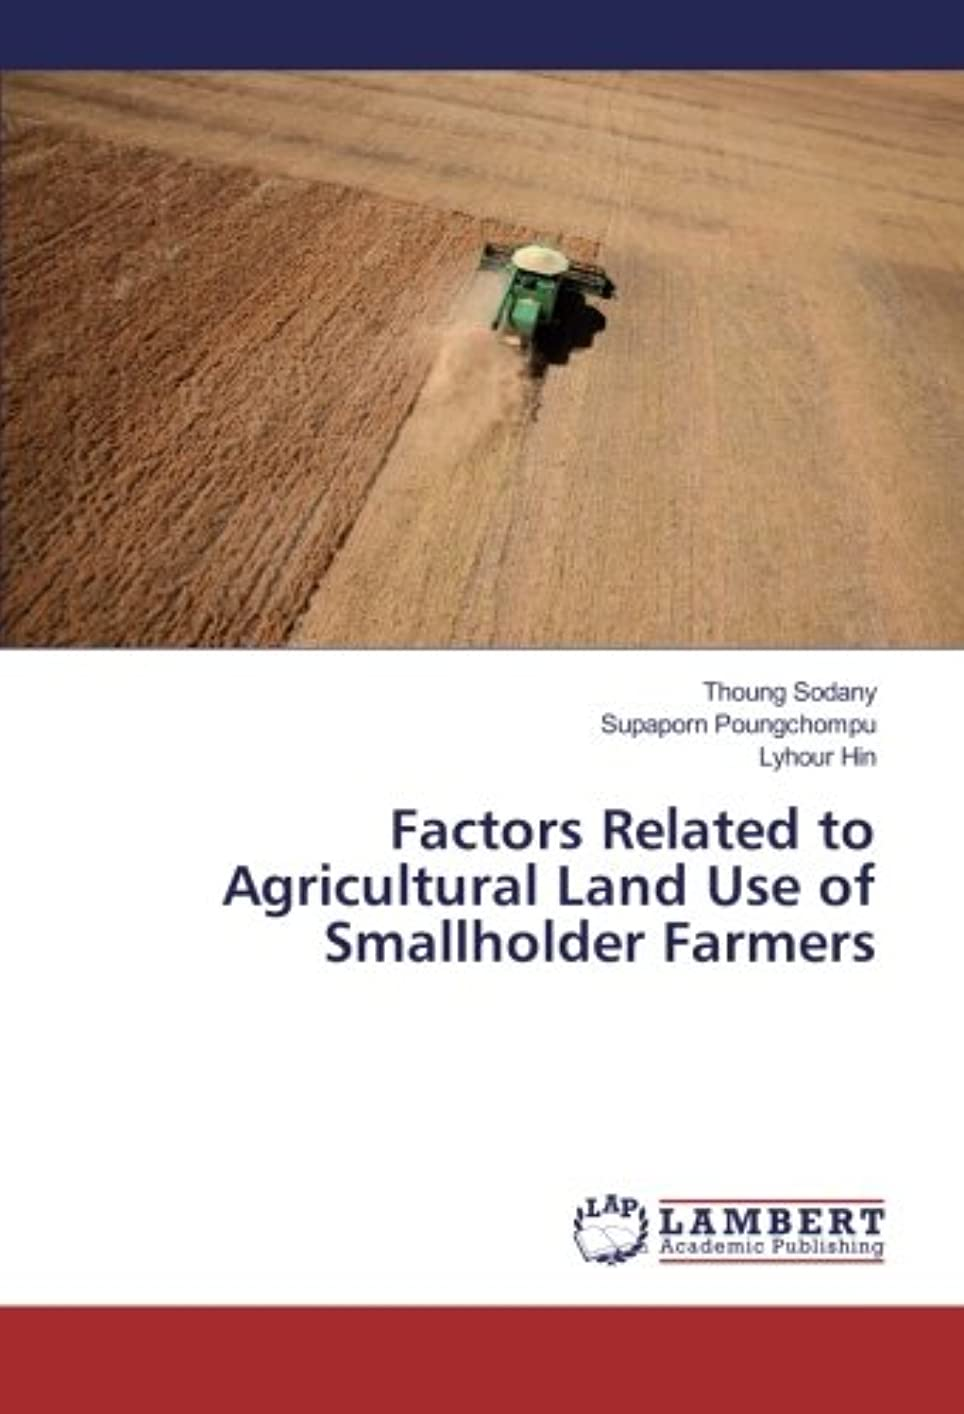 インフラサーキュレーション孤独Factors Related to Agricultural Land Use of Smallholder Farmers